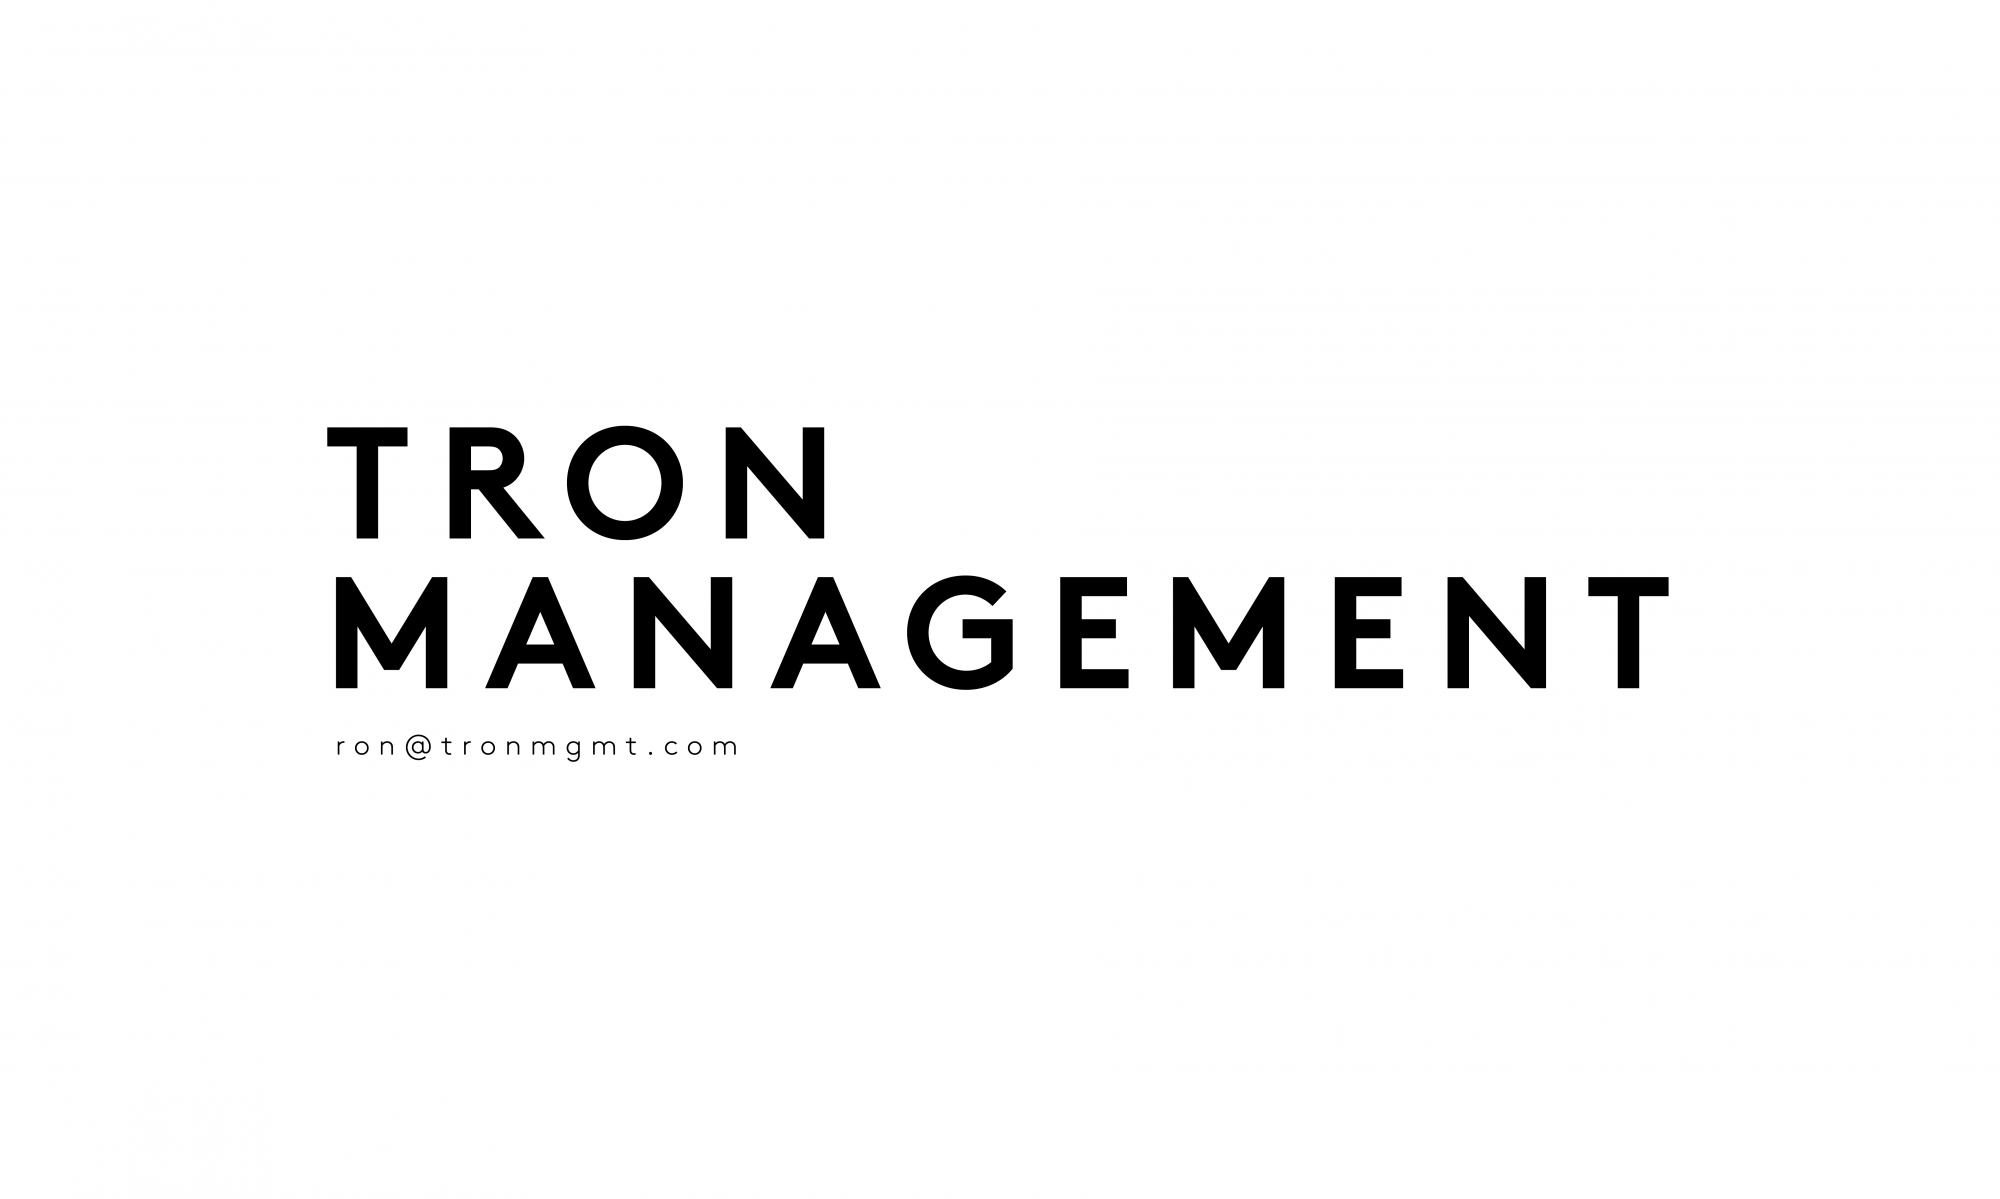 Tron Management